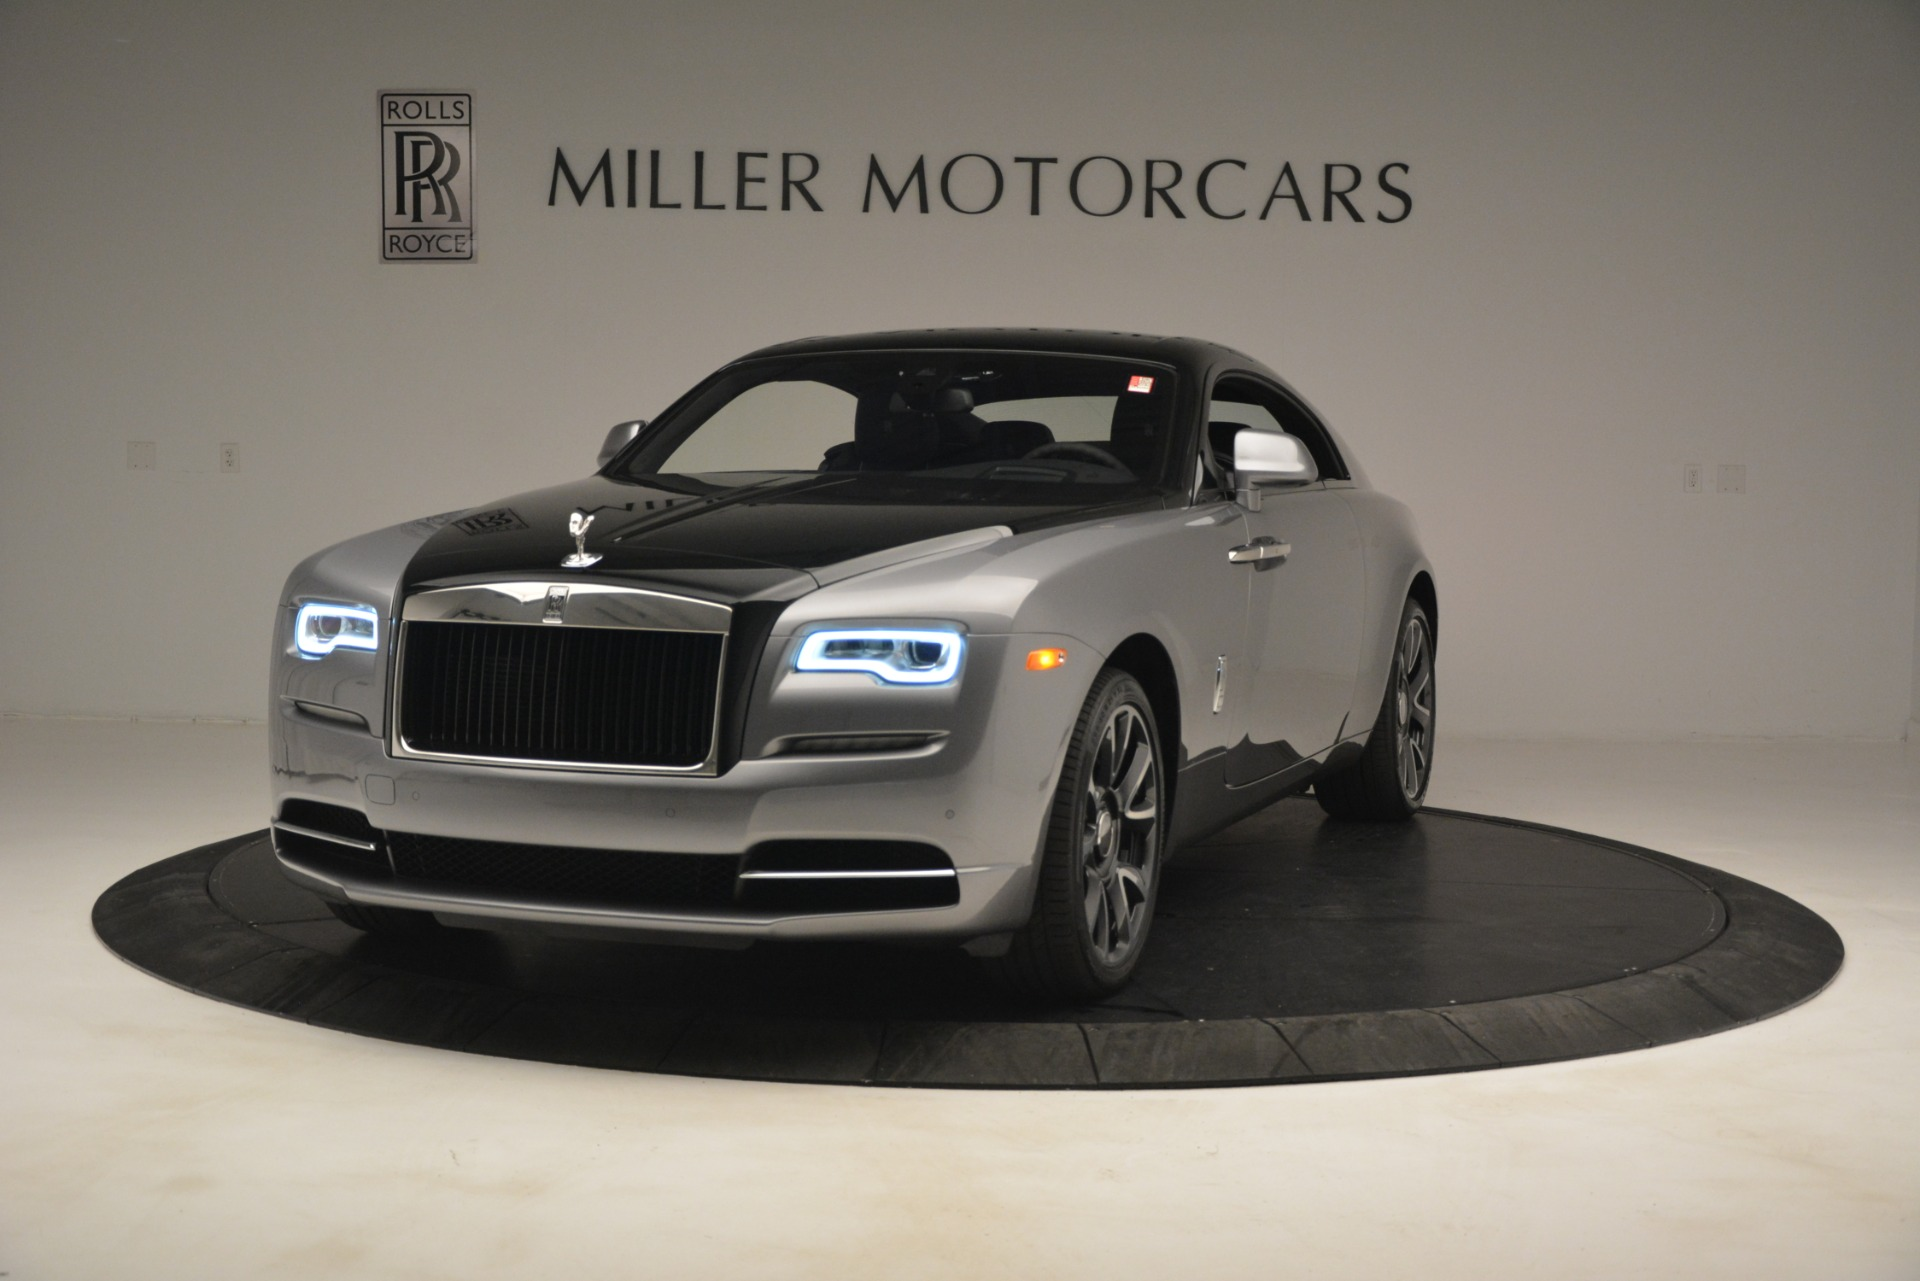 New 2019 Rolls-Royce Wraith for sale Sold at Rolls-Royce Motor Cars Greenwich in Greenwich CT 06830 1